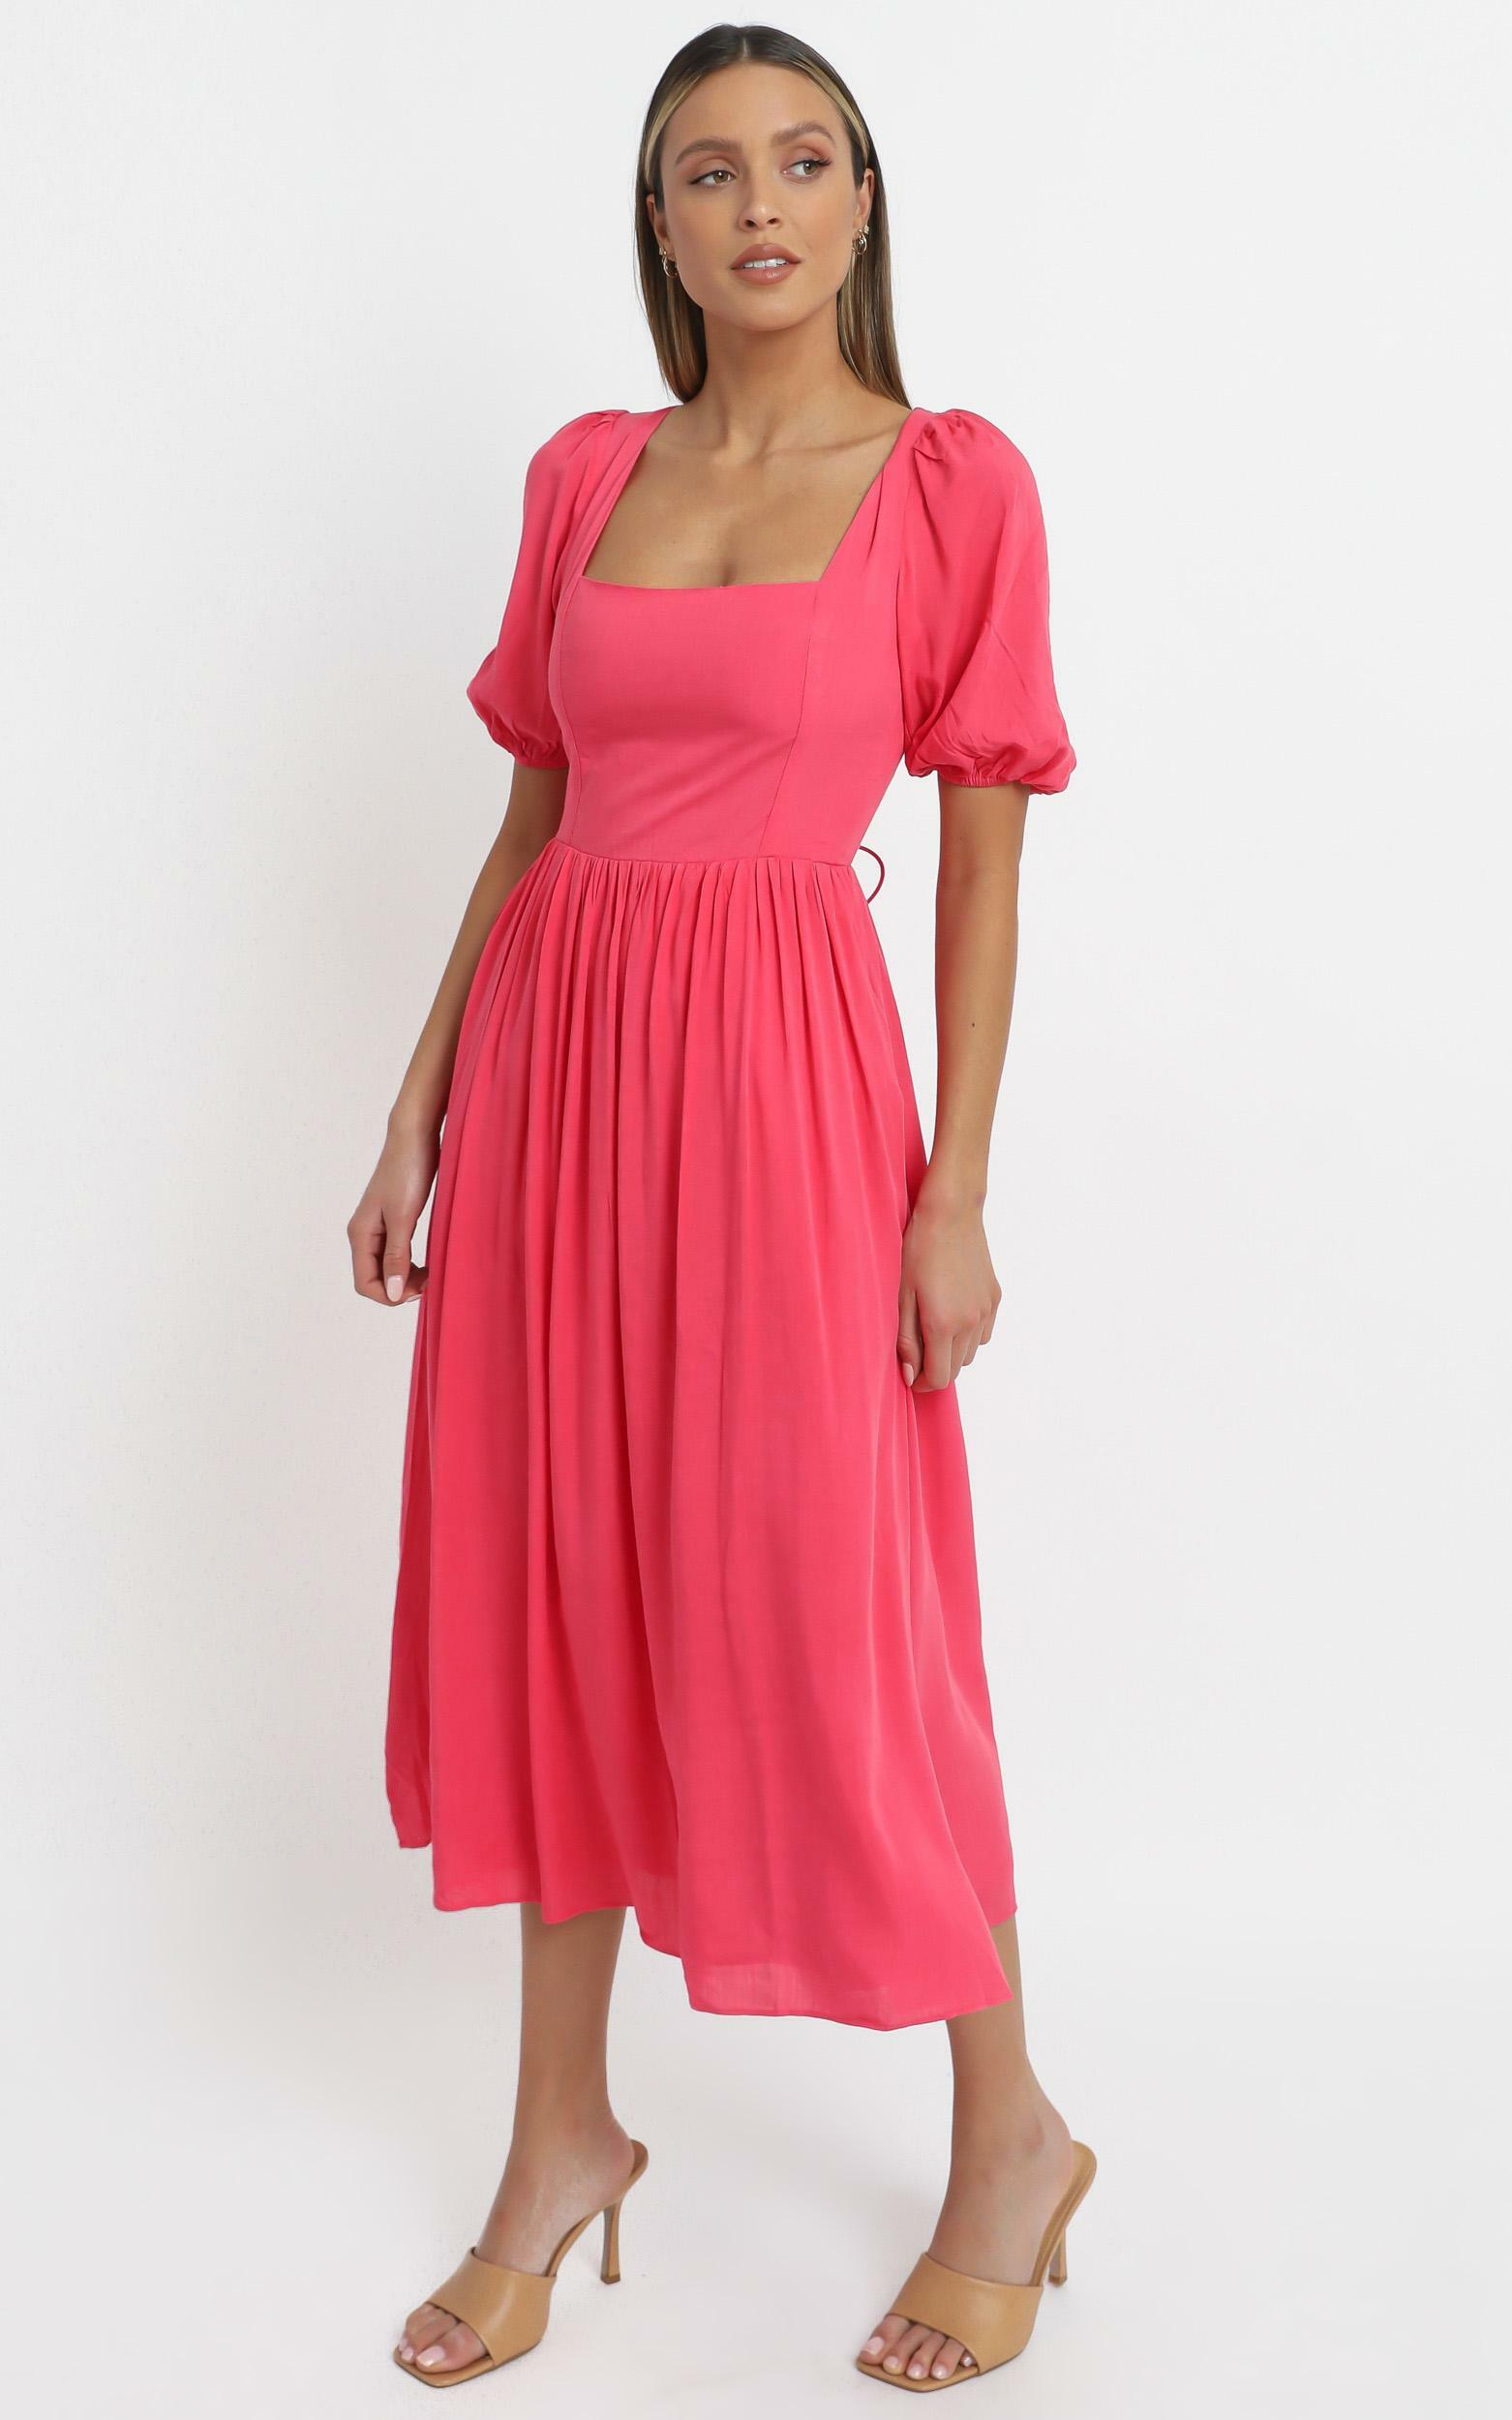 Poppy Dress in Hot Pink - 14 (XL), Pink, hi-res image number null